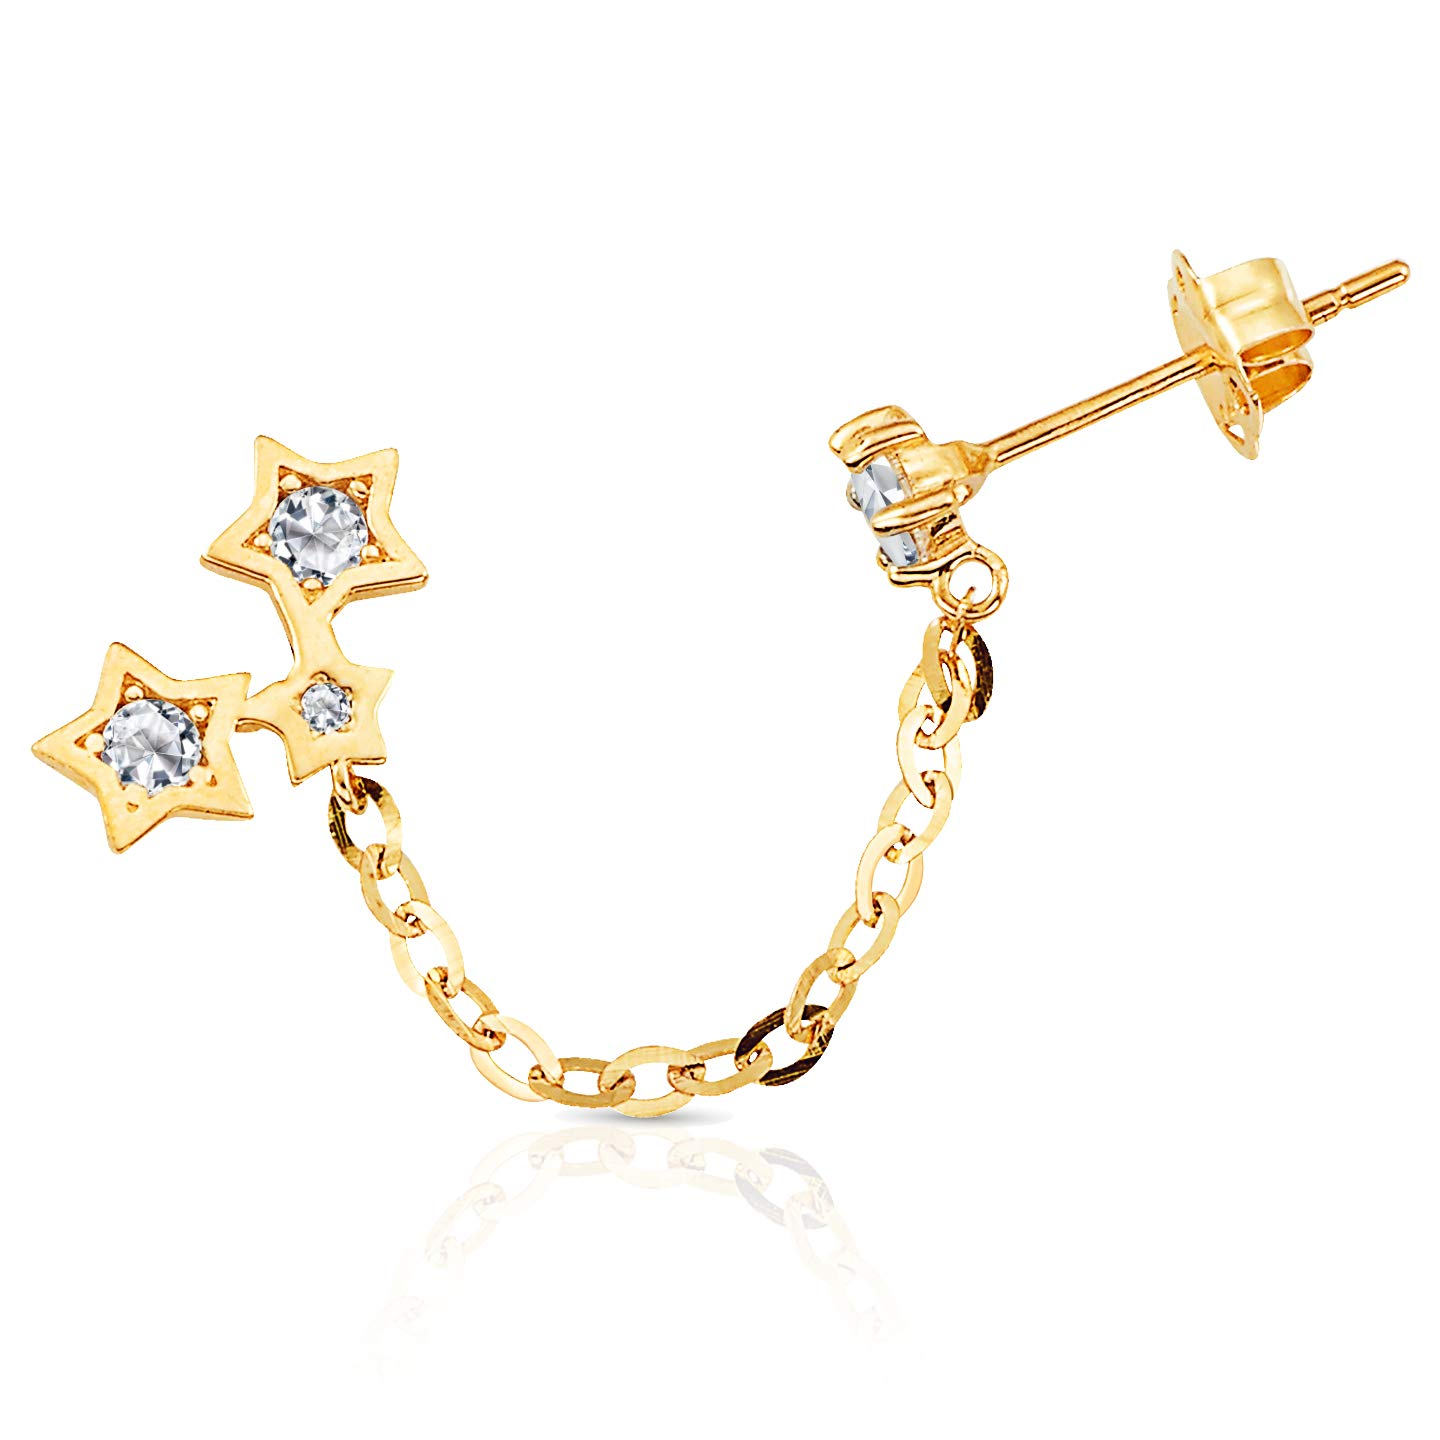 f88a18f24c276 Solid Stars with CZ Accent Chained to a CZ Stud Double Piercing ...